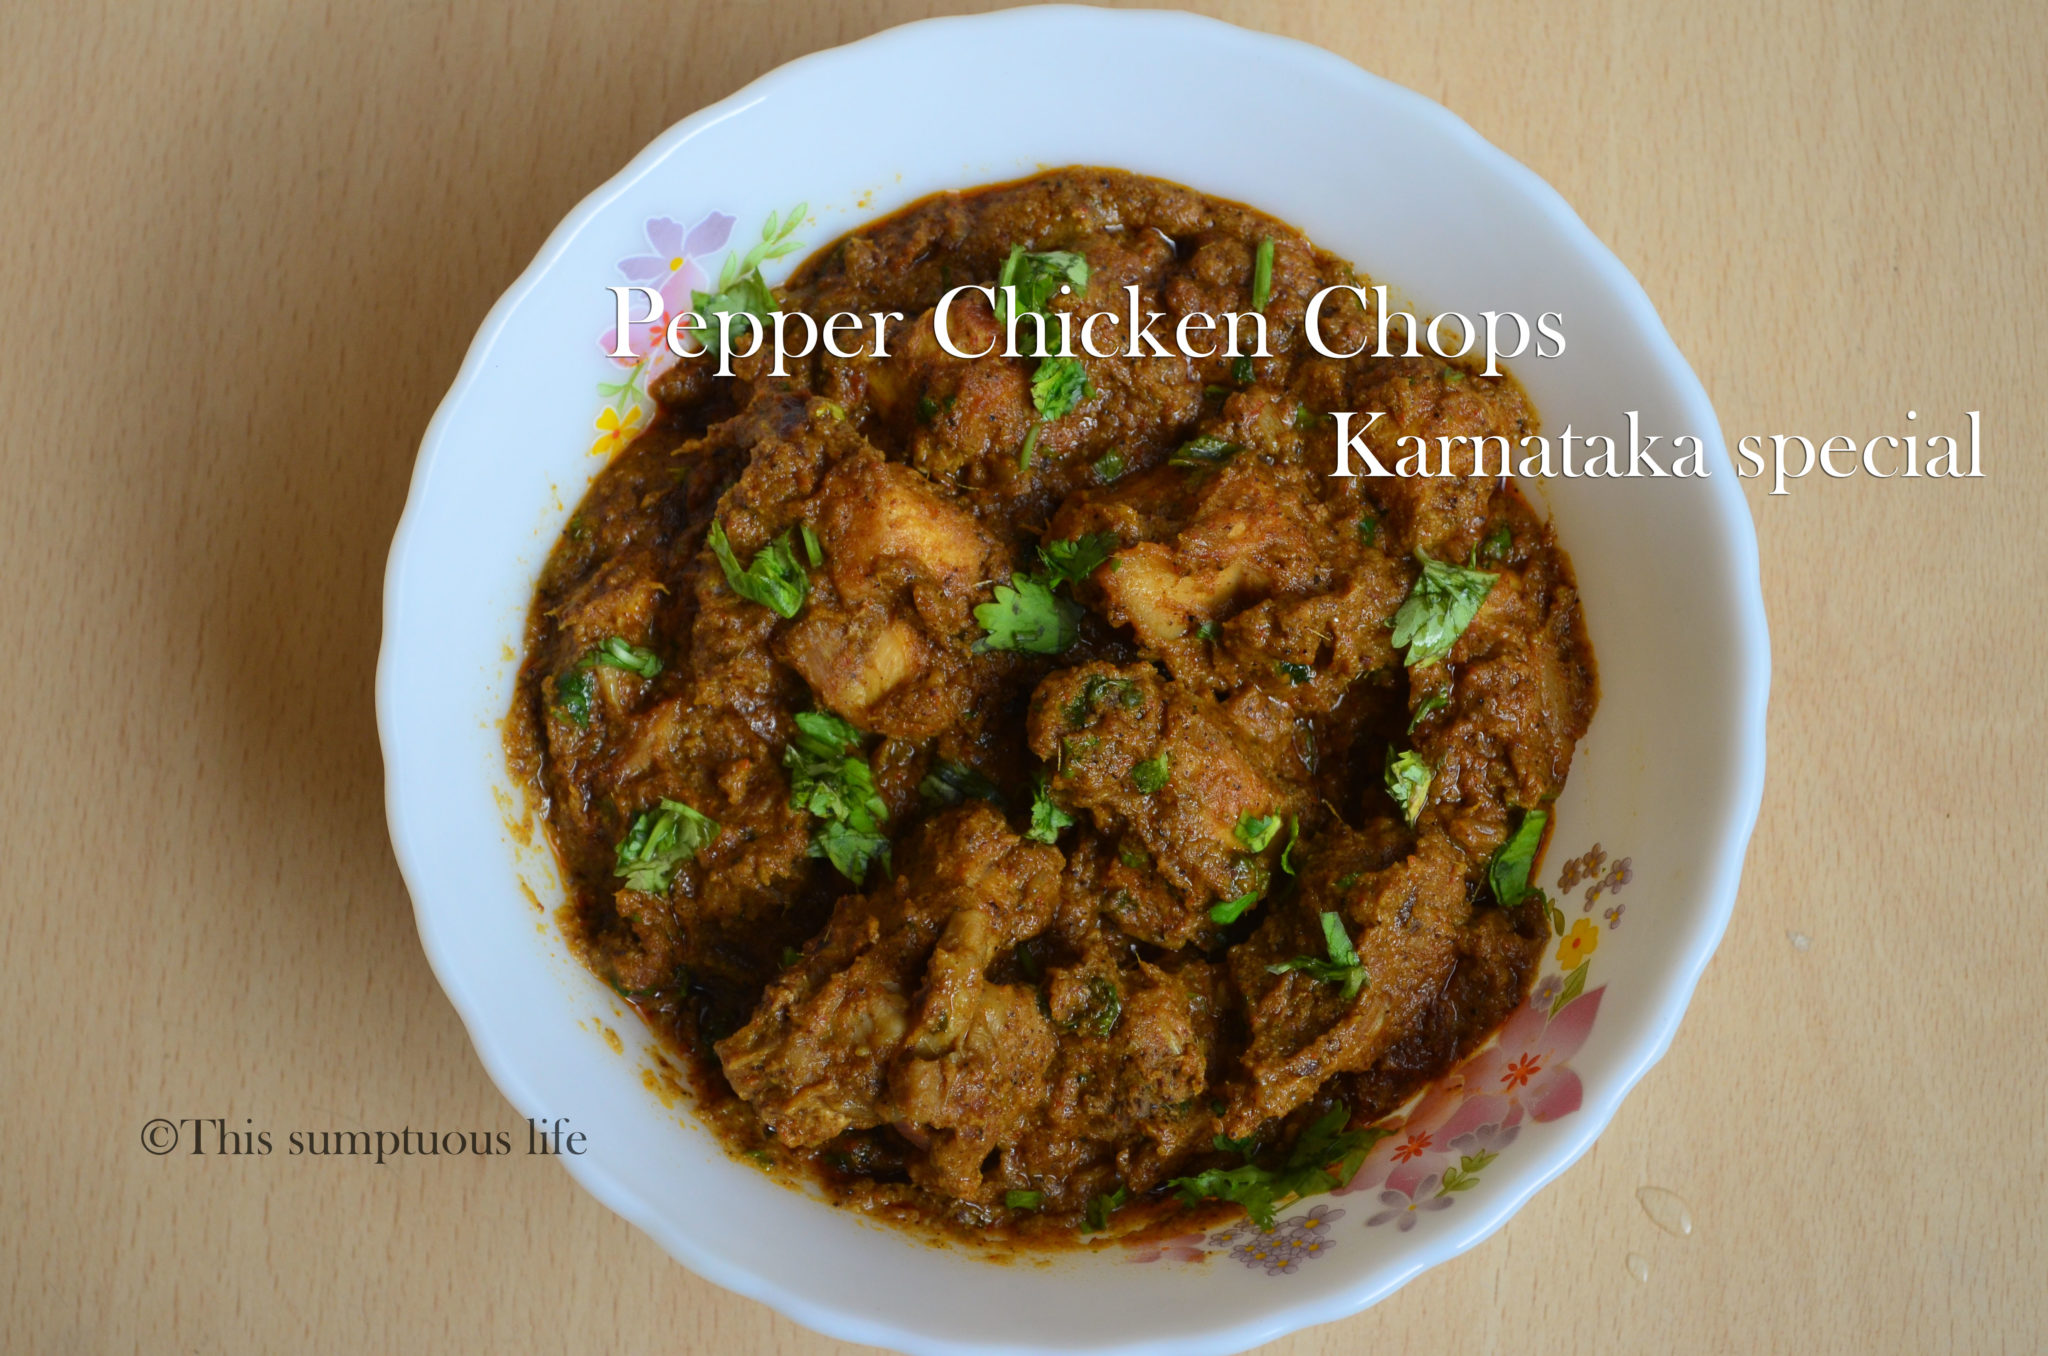 Pepper chicken chops karnataka style grandmas special authentic pepper chicken chops karnataka style grandmas special authentic chicken chops recipe this sumptuous life forumfinder Image collections